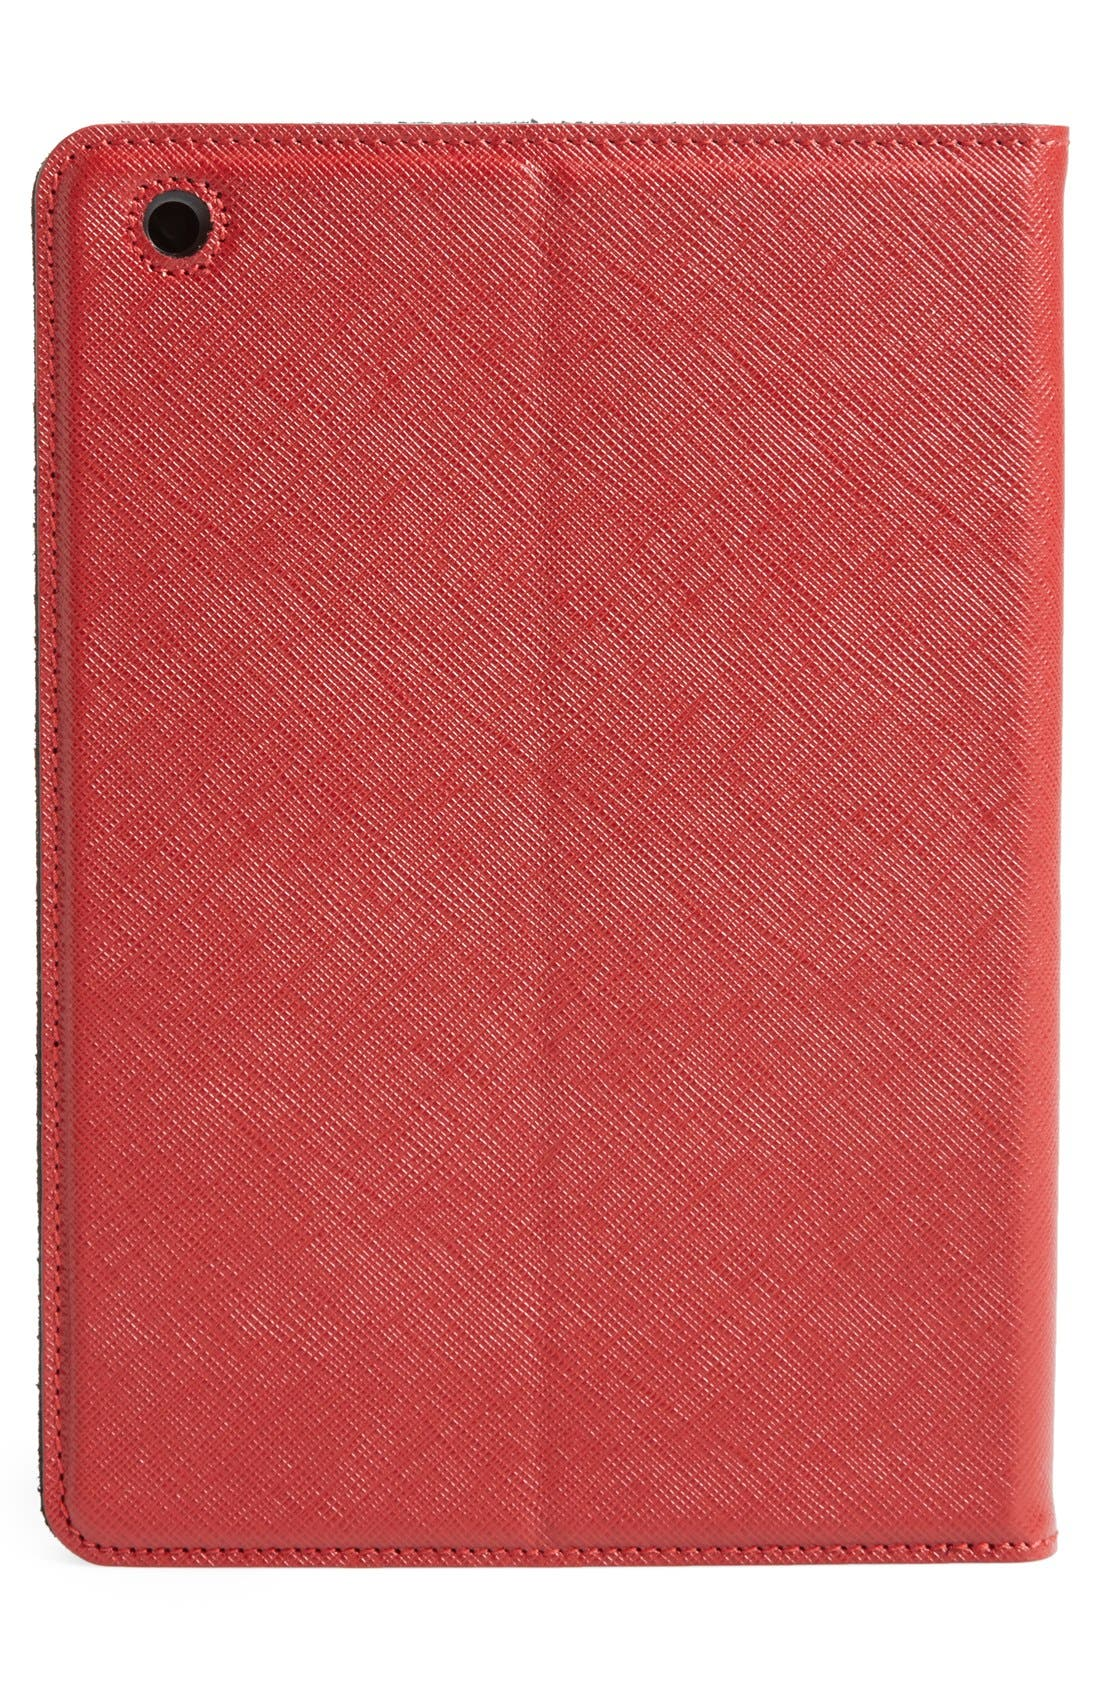 Alternate Image 5  - Salvatore Ferragamo 'Gancini' Leather iPad mini Case